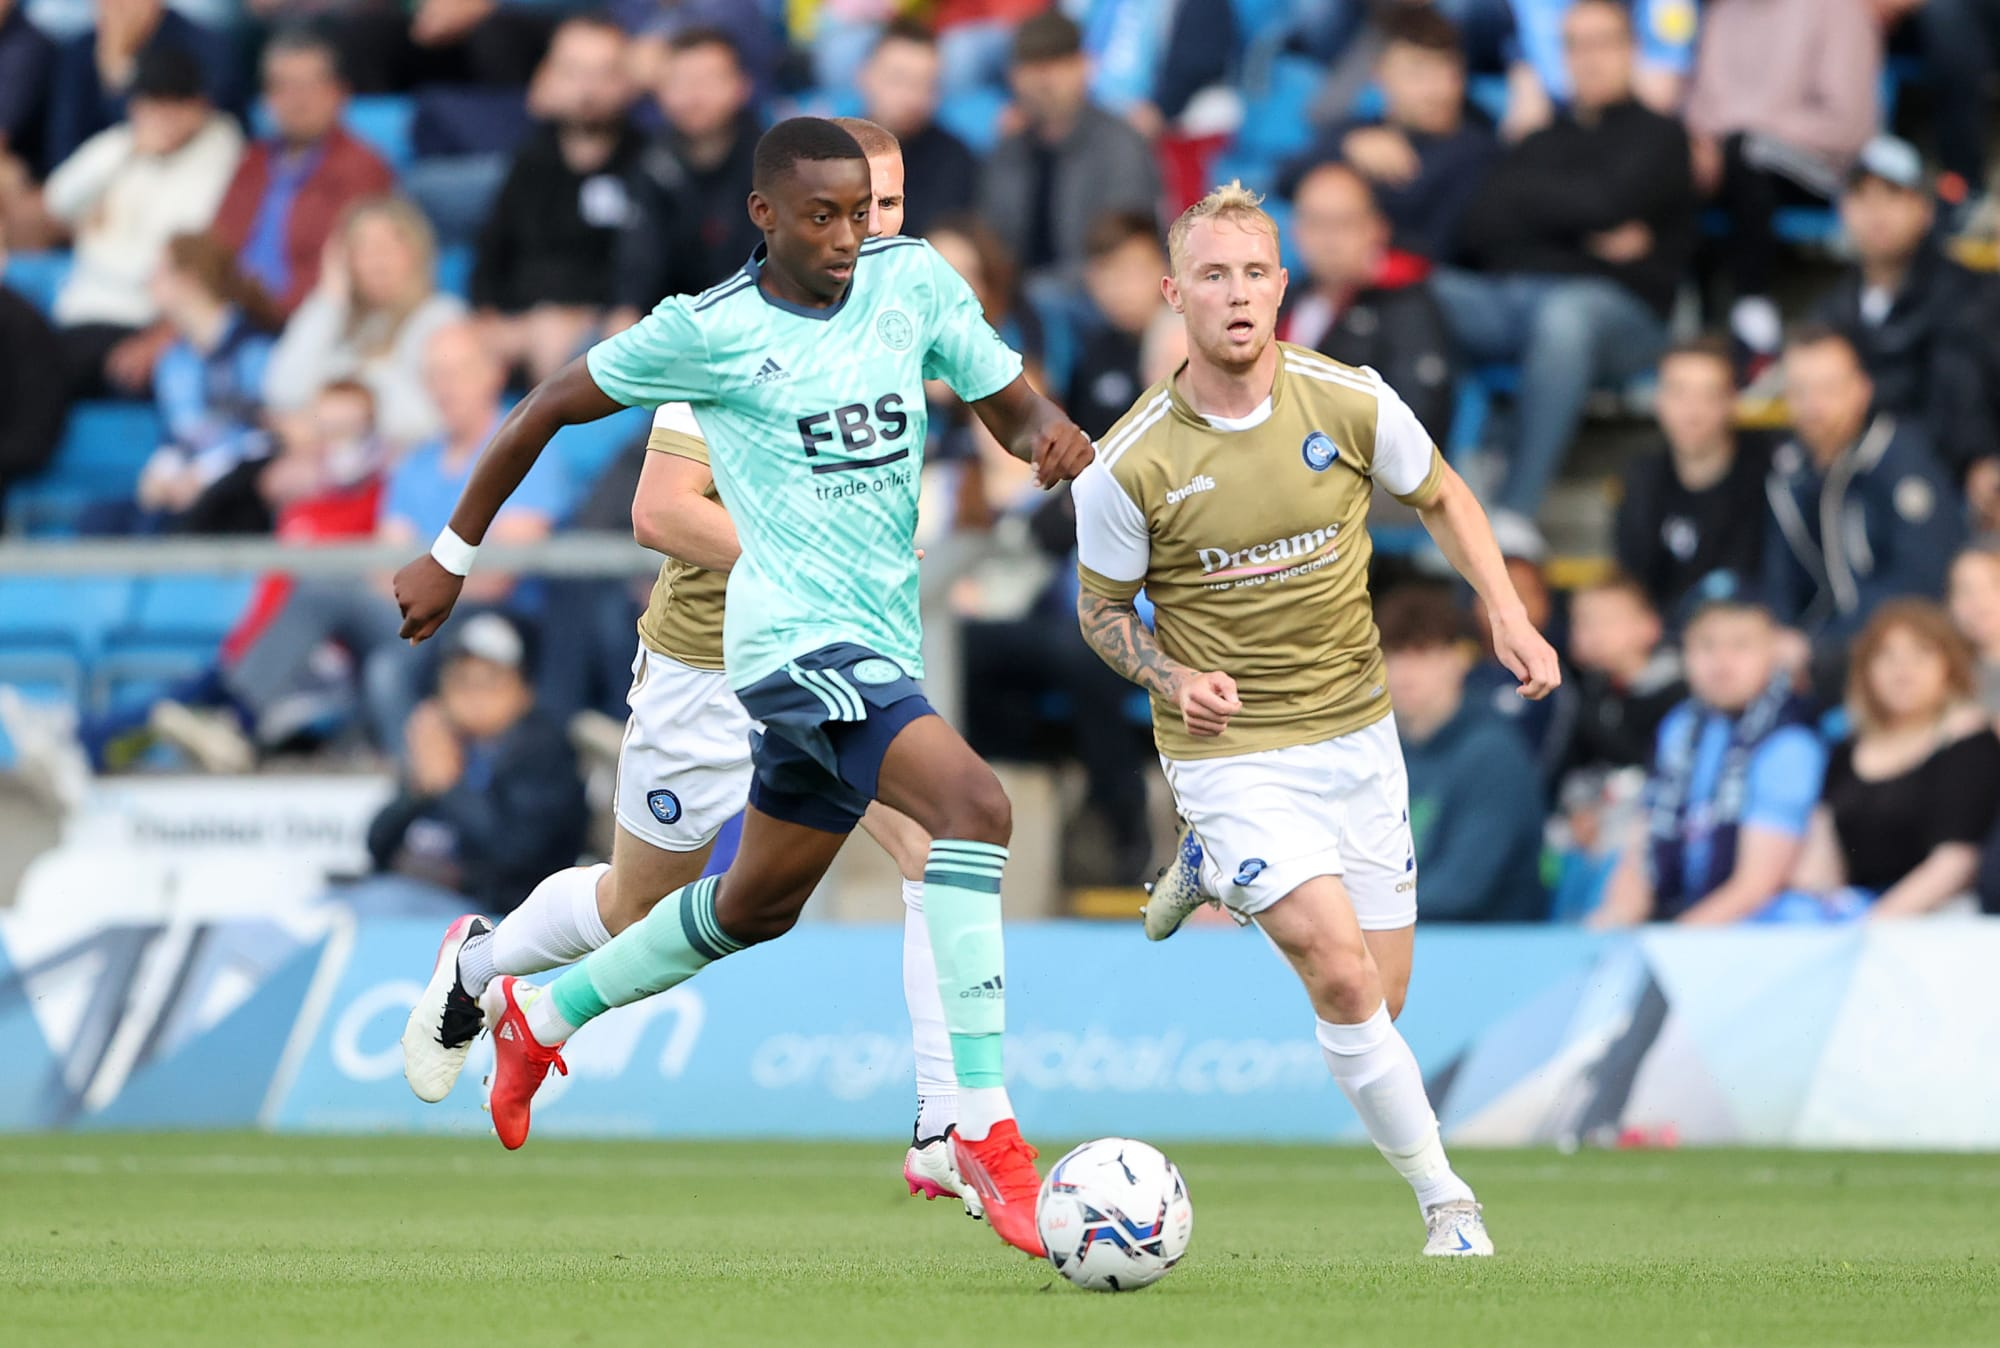 Leicester City: Three standout players from the second pre-season game